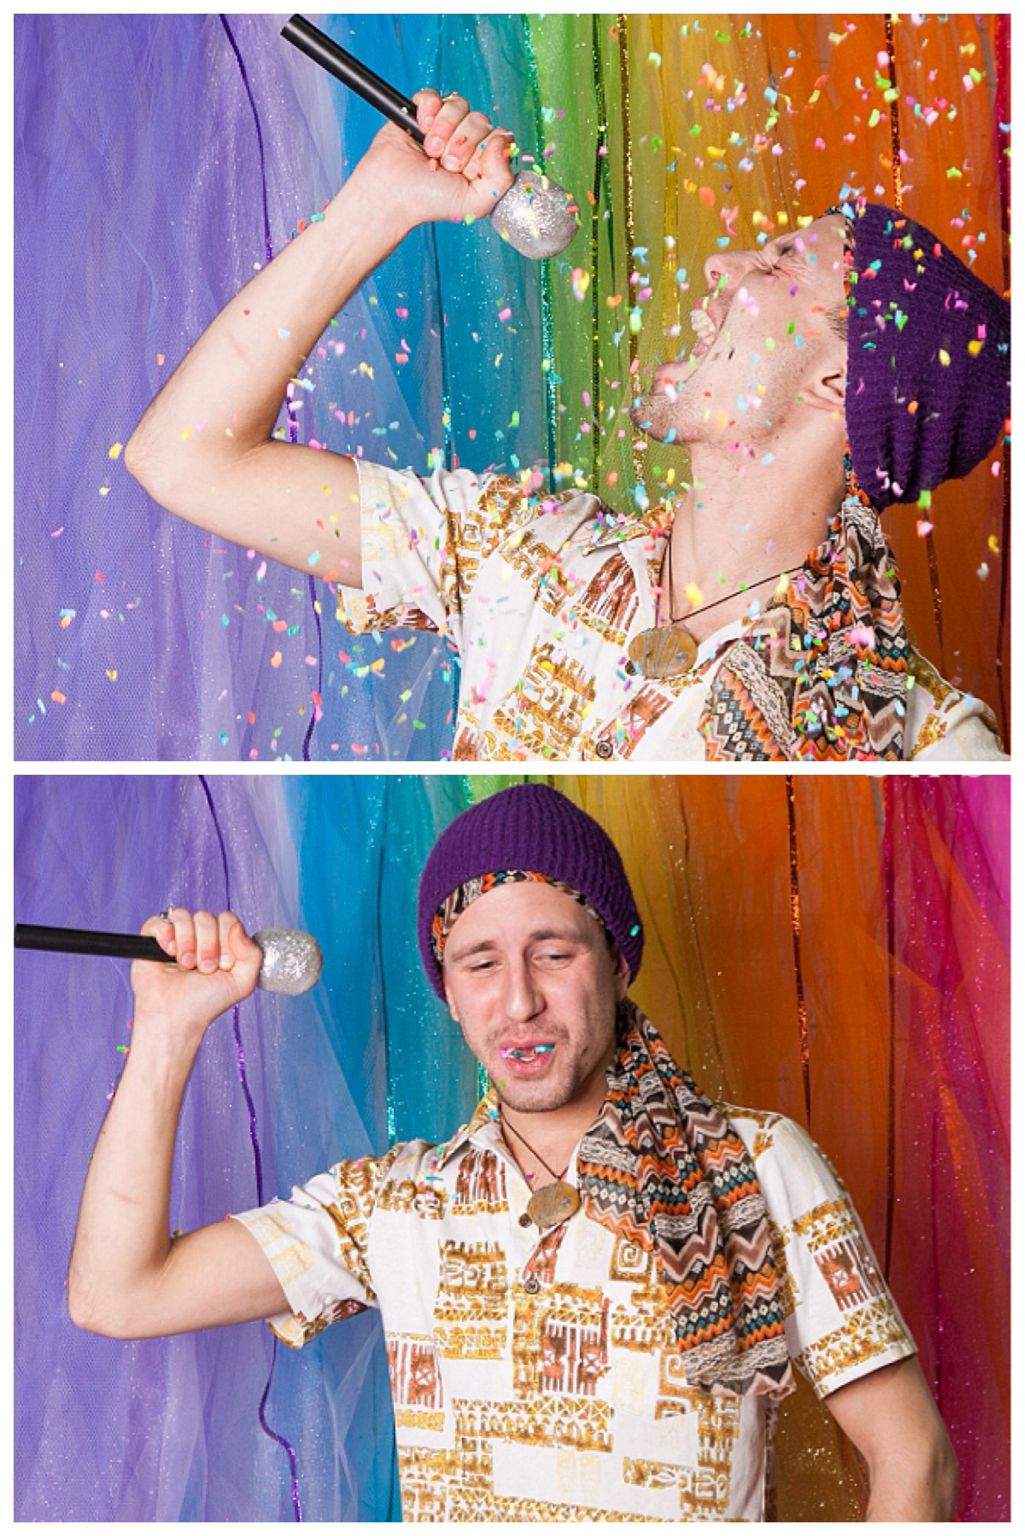 Sassy Confetti Sprinkles Photobooth Unicorn Edition Pictures